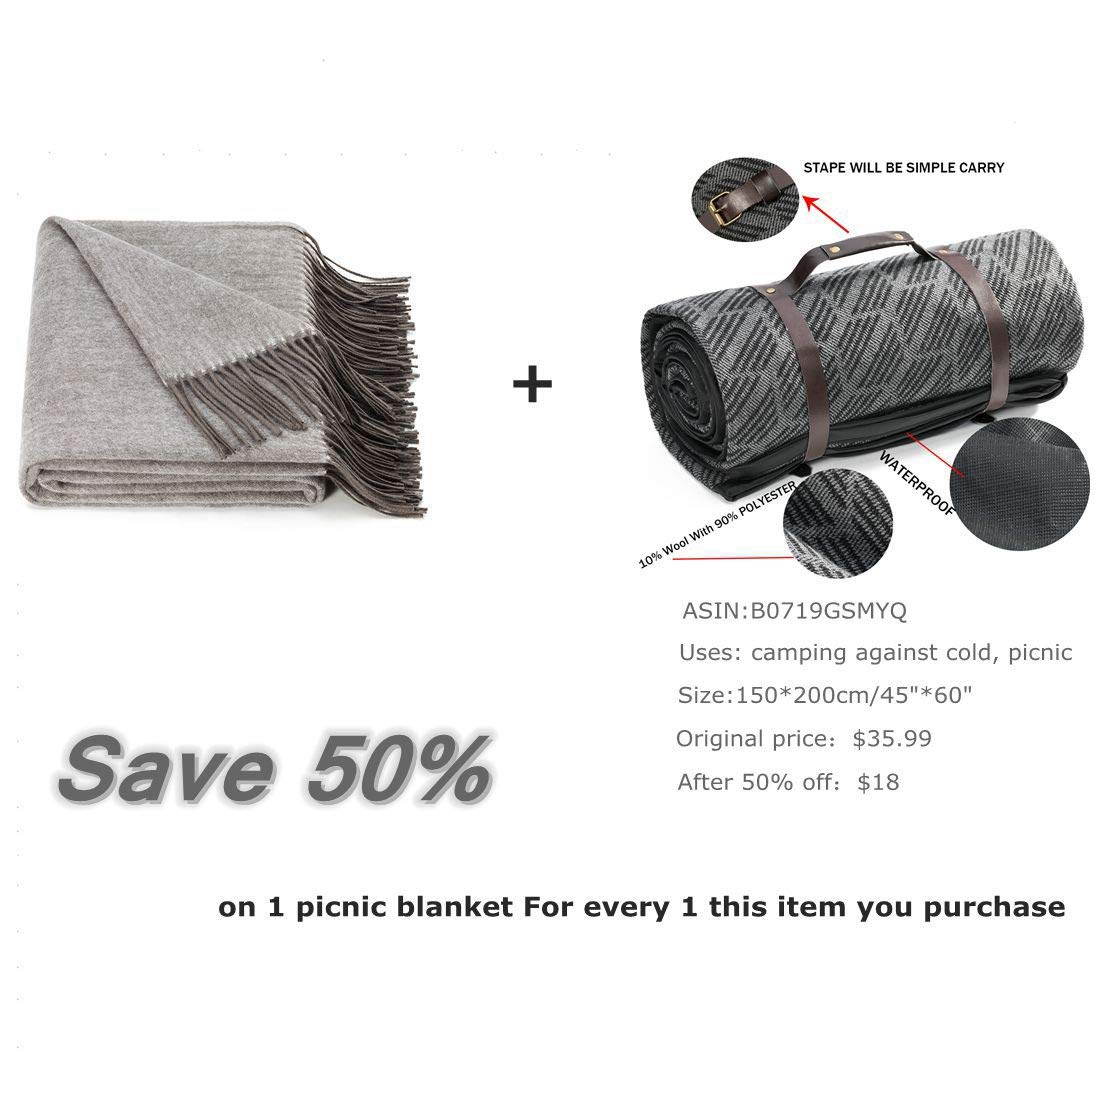 SPENCER&WHITNEY Picnic Blanket Waterproof 10% Wool/90% POLYESTER Fleece Picnic Blanket All-Purpose Water Proof Picnic Blanket Outdoor